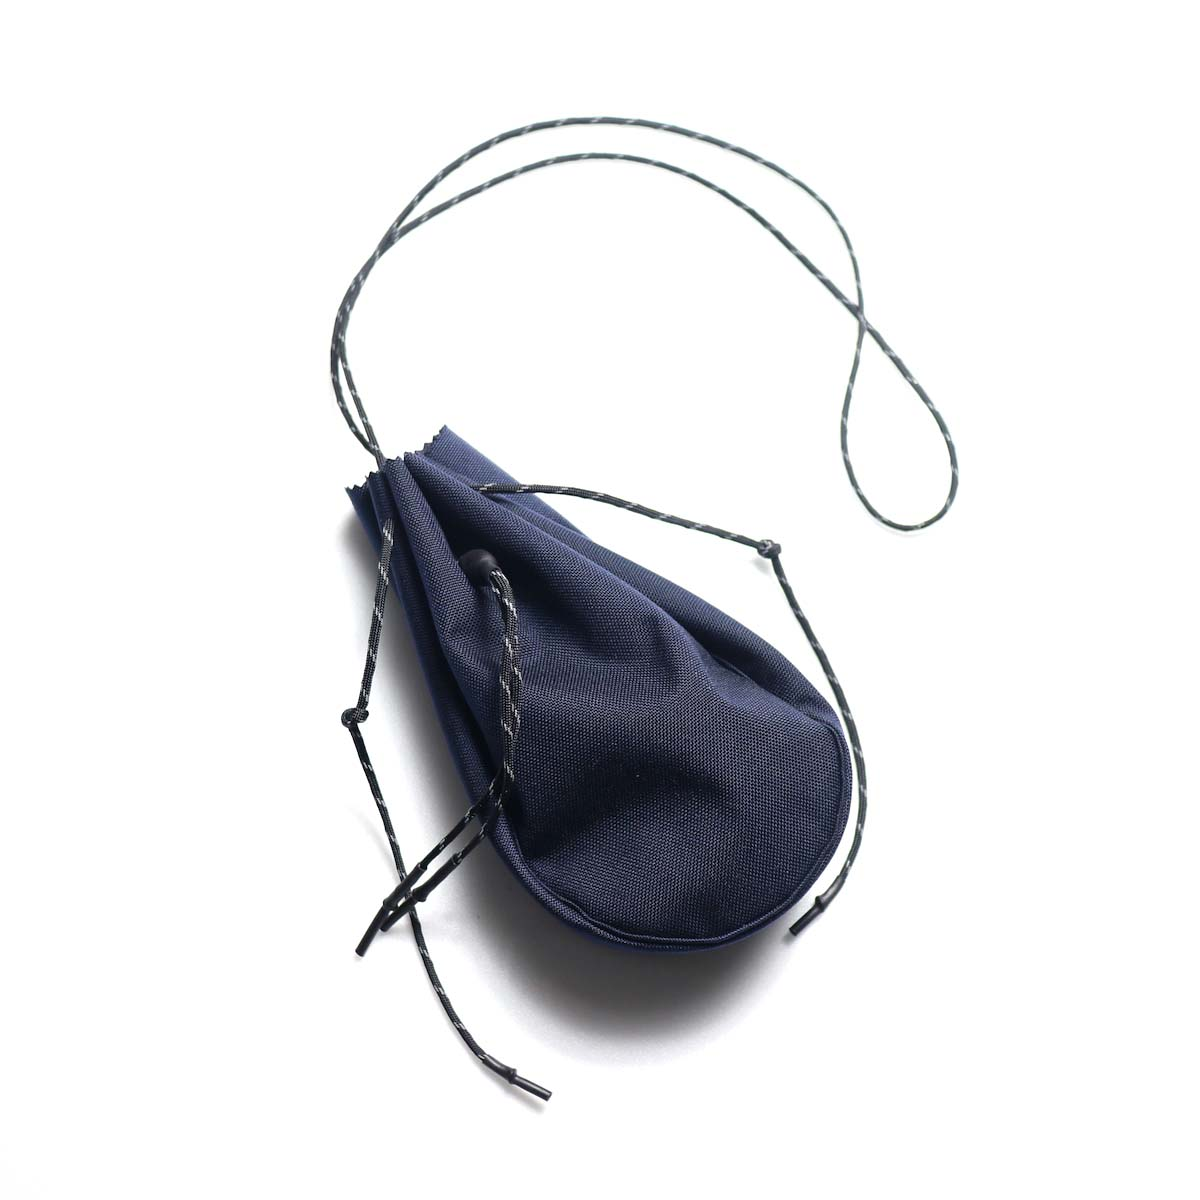 吉岡衣料店 / drawstring bag -S-. (Navy)